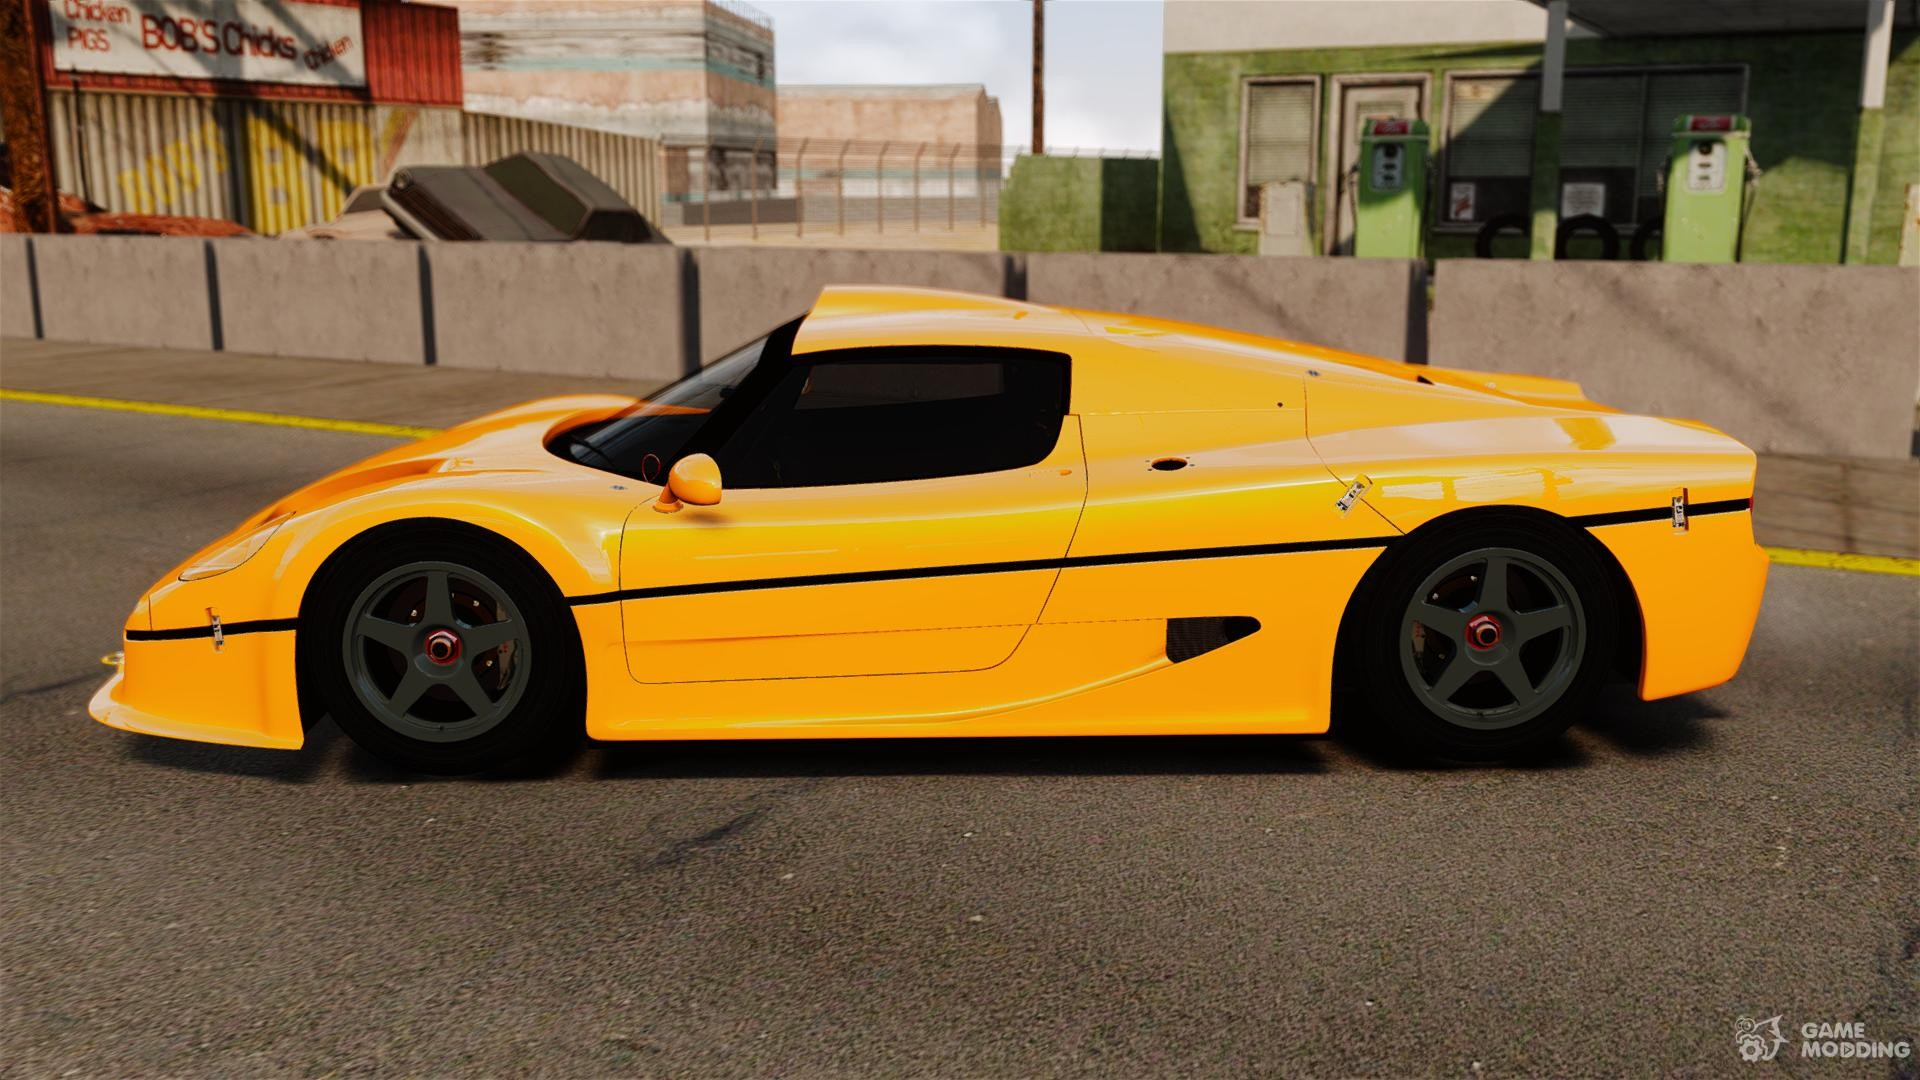 Ferrari f50 yellow image collections hd cars wallpaper ferrari f50 interior images hd cars wallpaper ferrari f50 gt 1996 for gta 4 ferrari f50 vanachro Choice Image